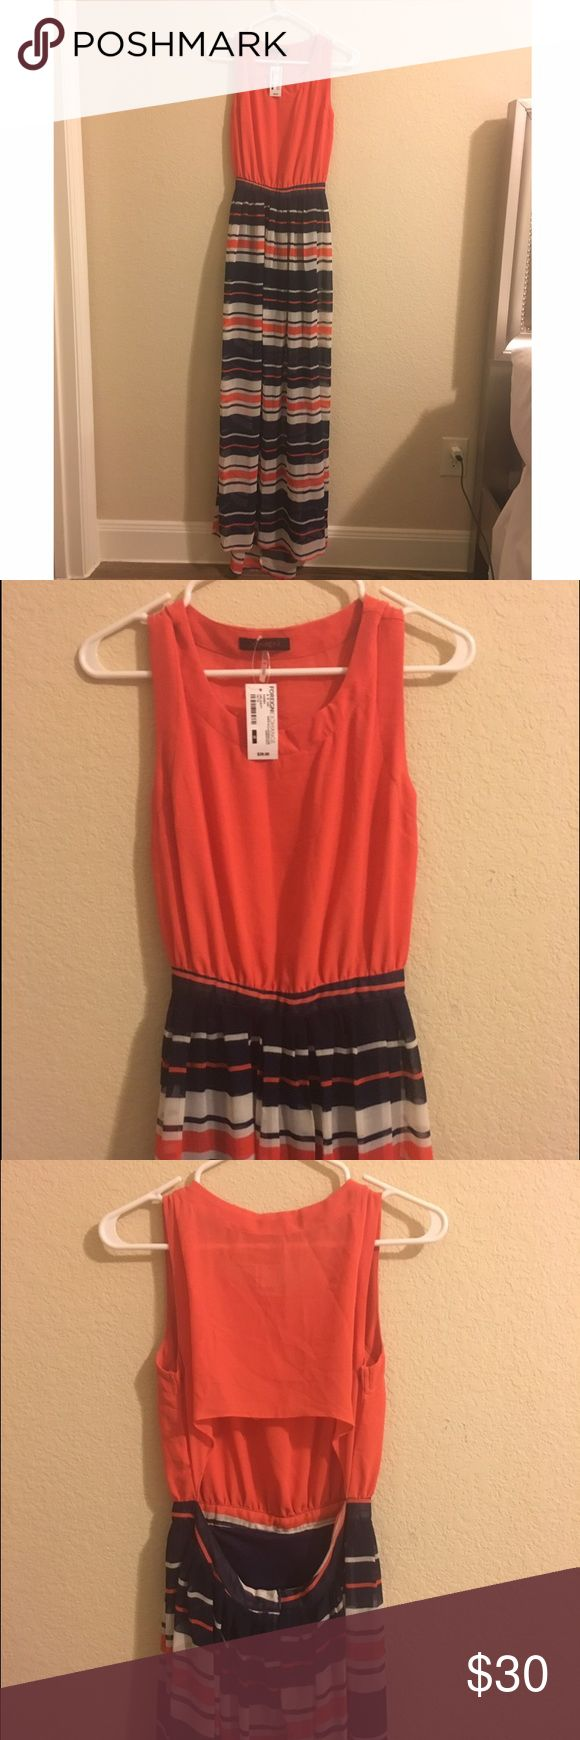 NWT!! Maxi Dress 👗 NWT! Foreign Exchange Summer Max Dress! Supper Cute Cut Out Back | Slit Underneath Foreign Exchange Dresses Maxi